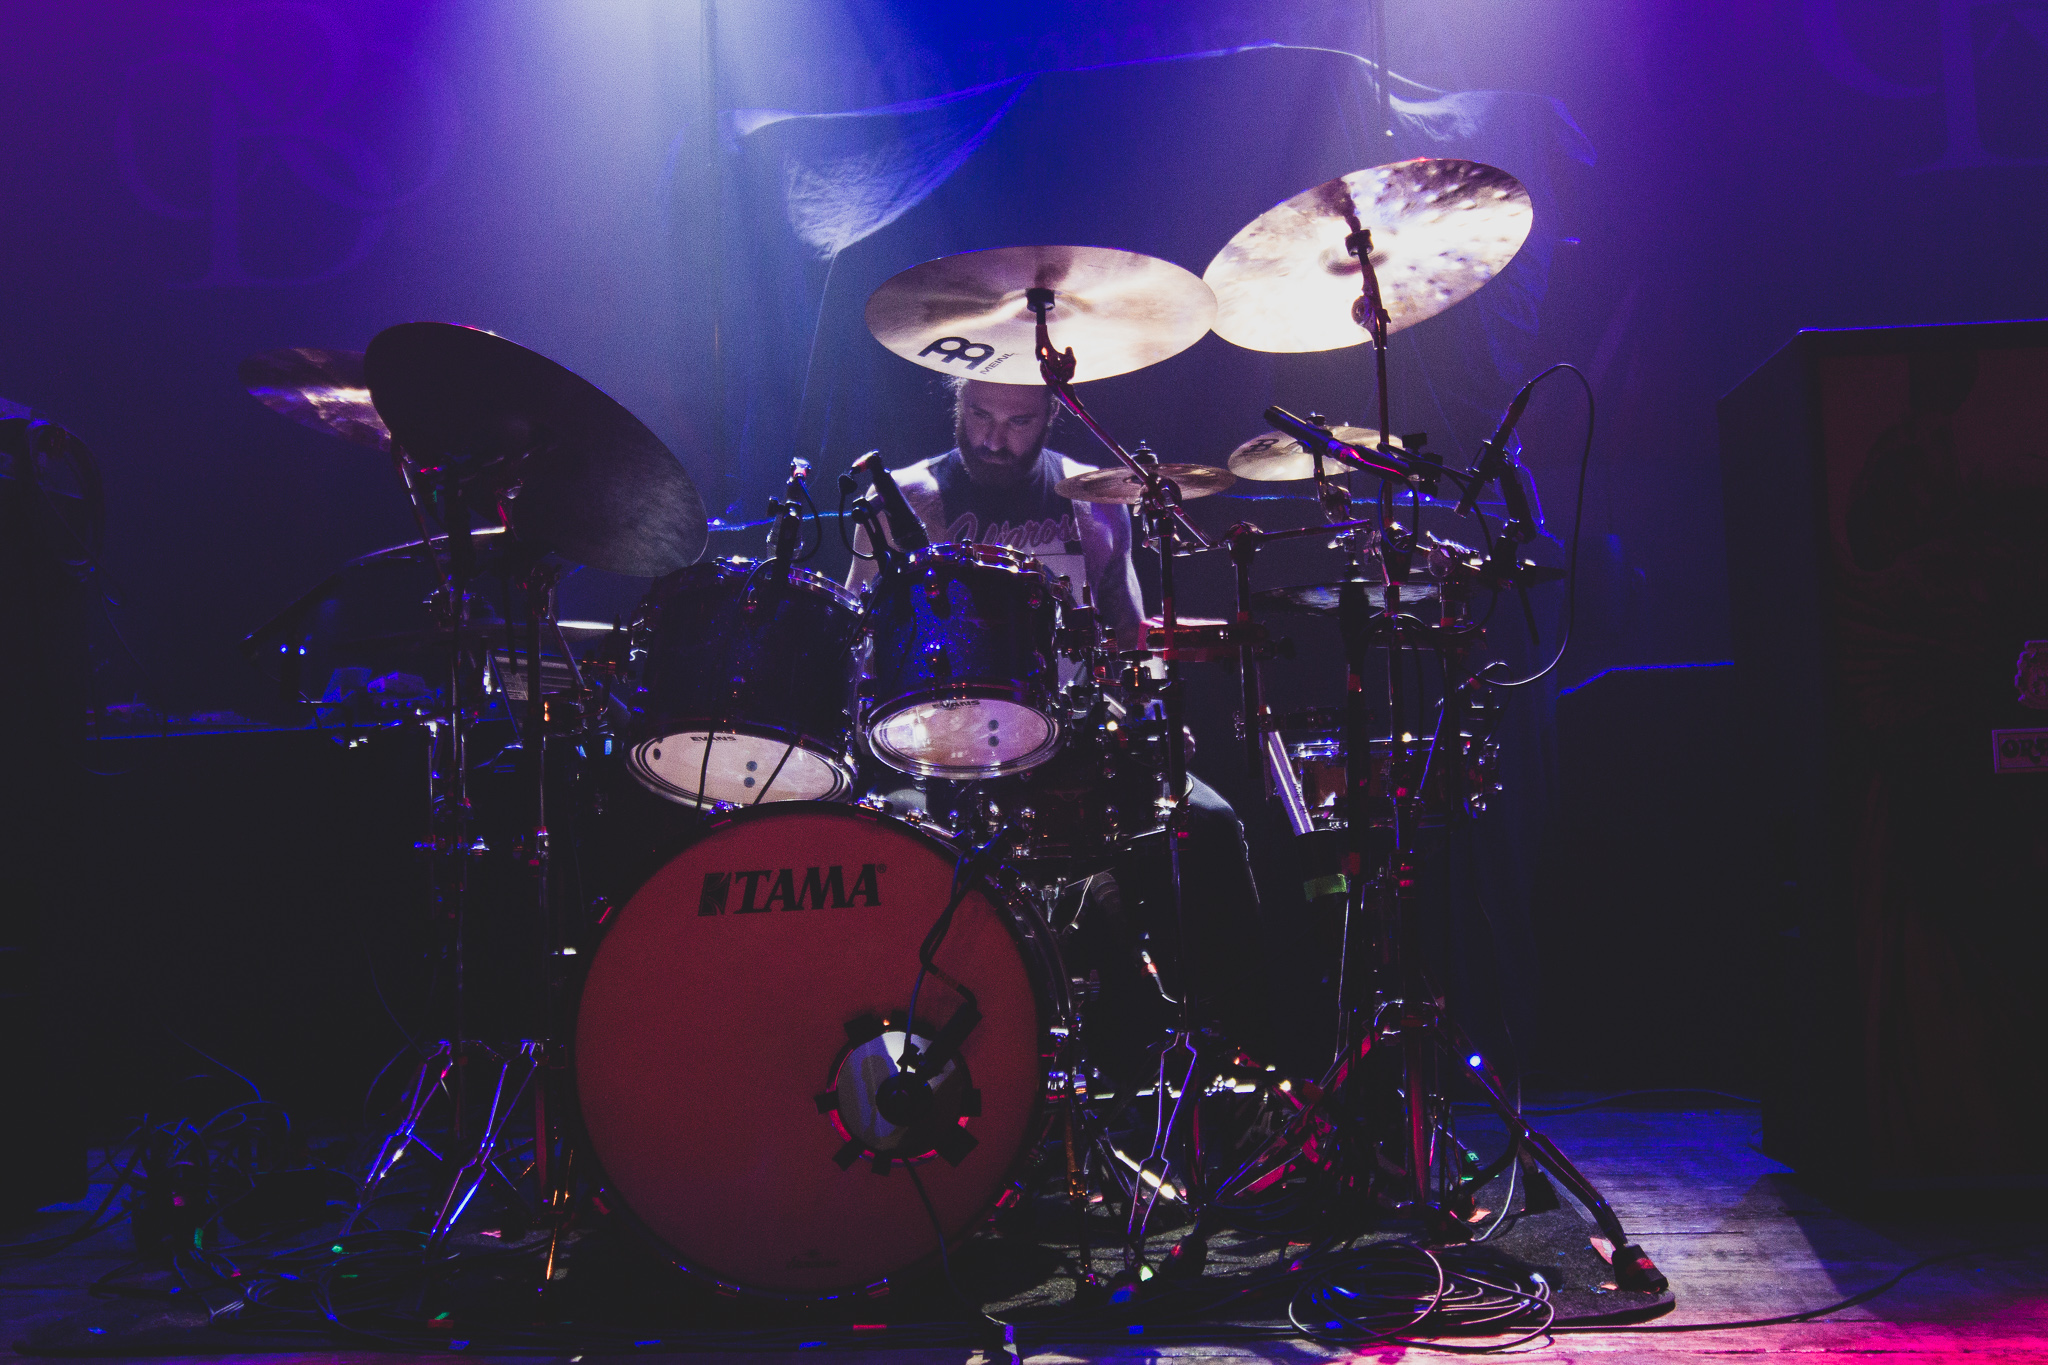 Clay Aeschliman of Polyphia drumming for Lil Aaron in Chicago, IL at The House of Blues on 12/01/2019. Photo:Abby Hamann